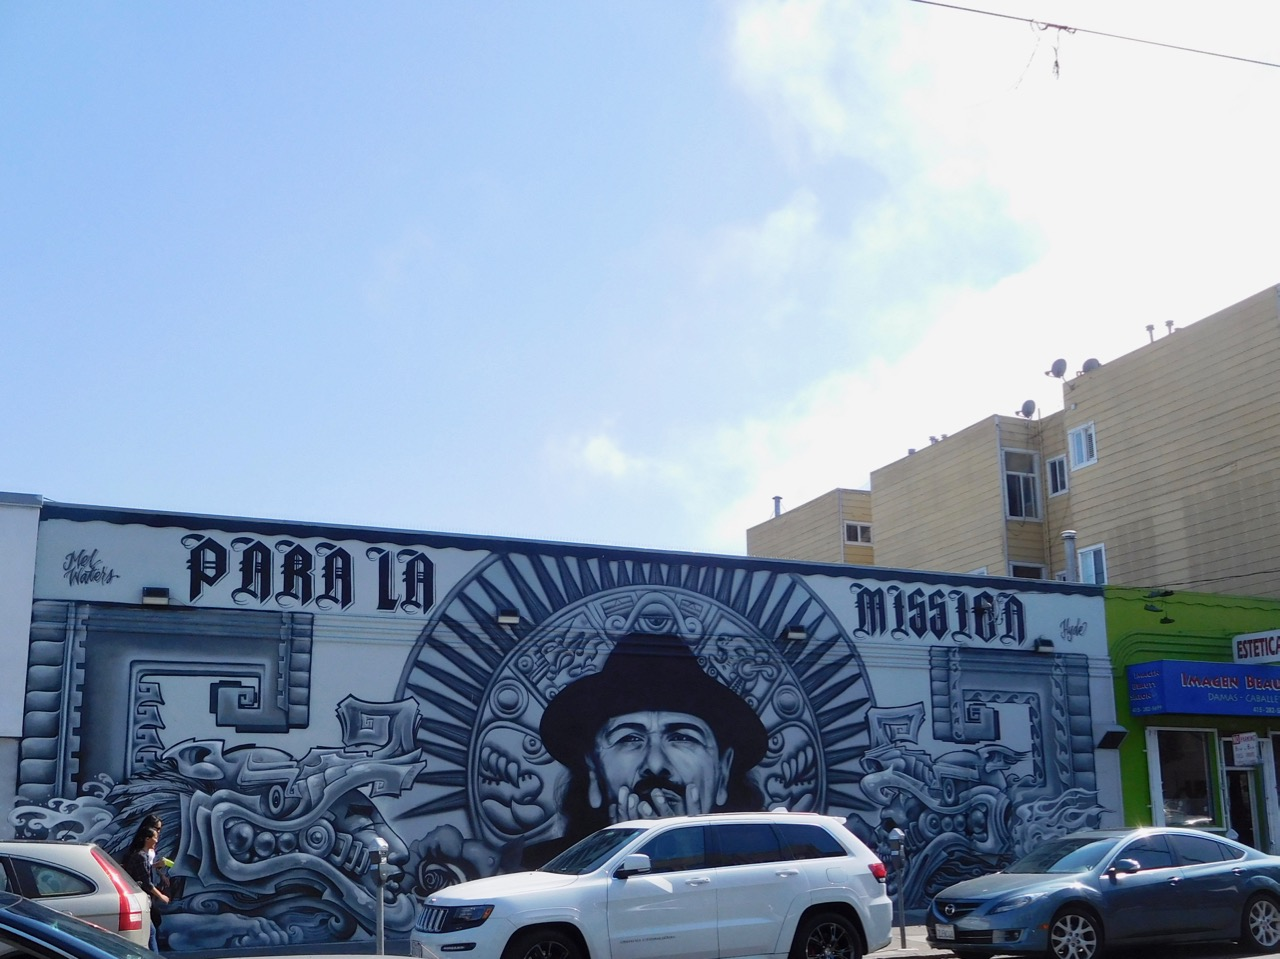 San Francisco Photo Journal - a day in SF (8)